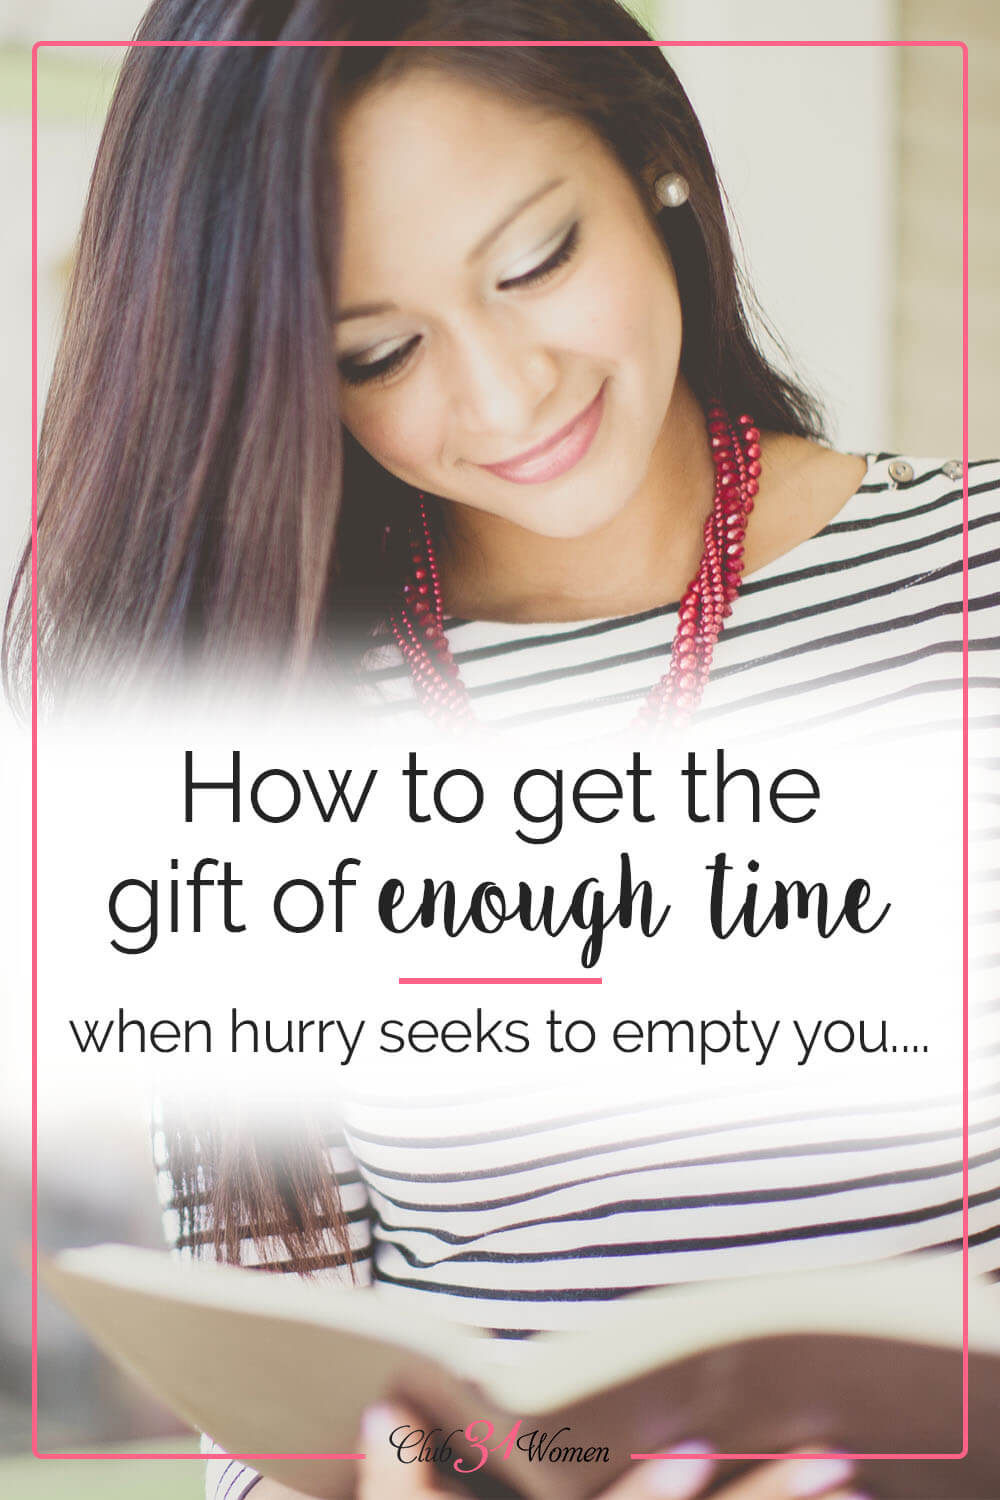 When you constantly feel overwhelmed and rushed, slow down enough to recognize the gift of time you've been given. via @Club31Women